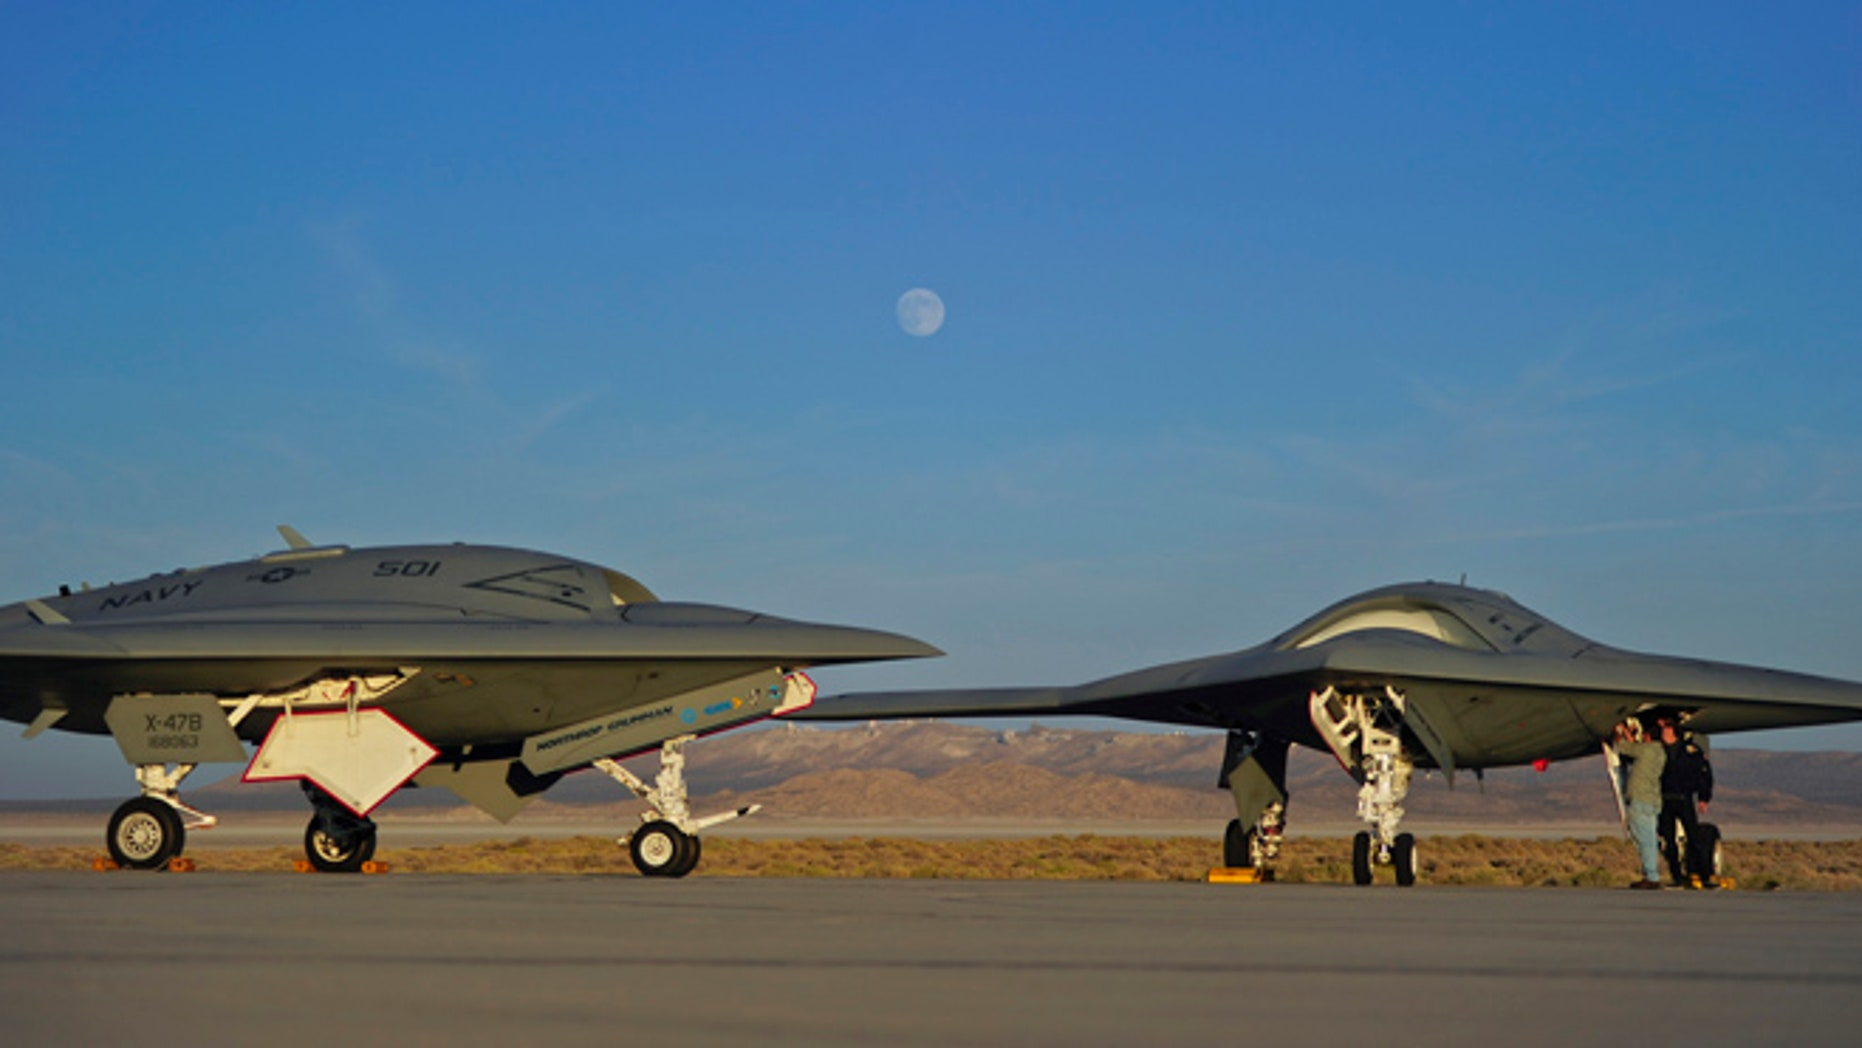 A Northrop Grumman X-47B, shown here, may have been mistaken for a UFO when it was transported on a D.C. highway.